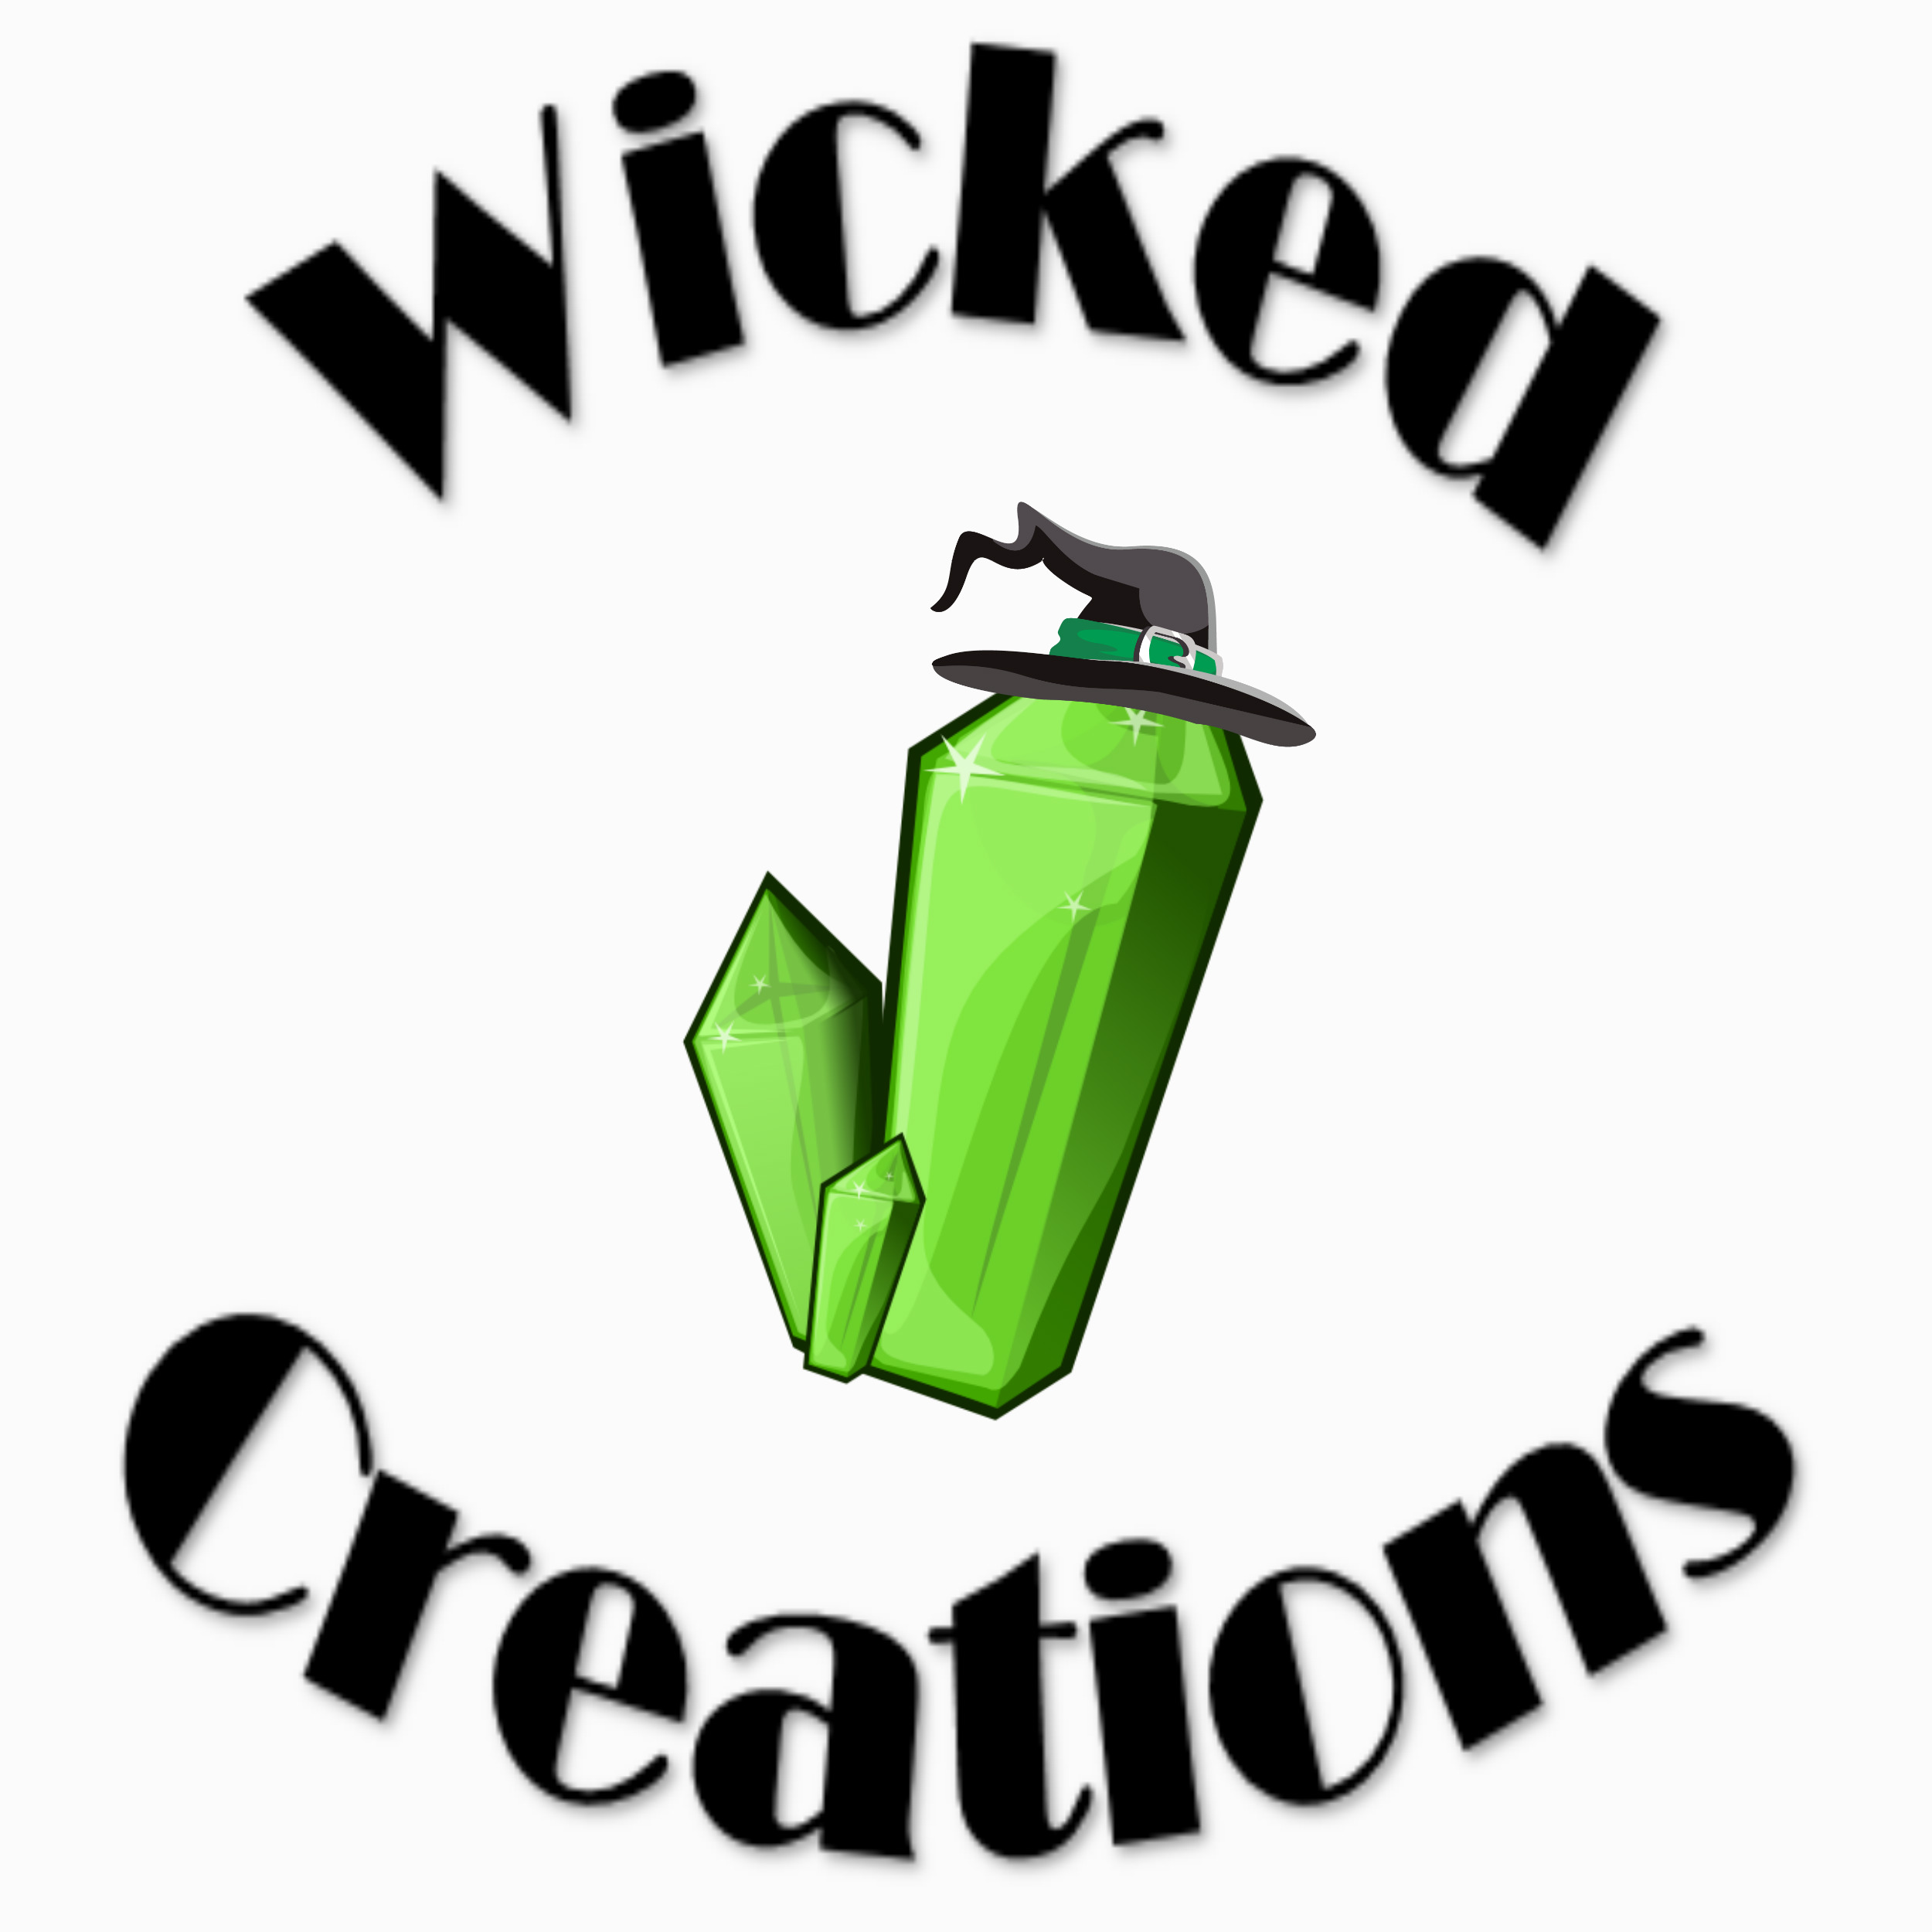 greeting cards by Wicked Creations